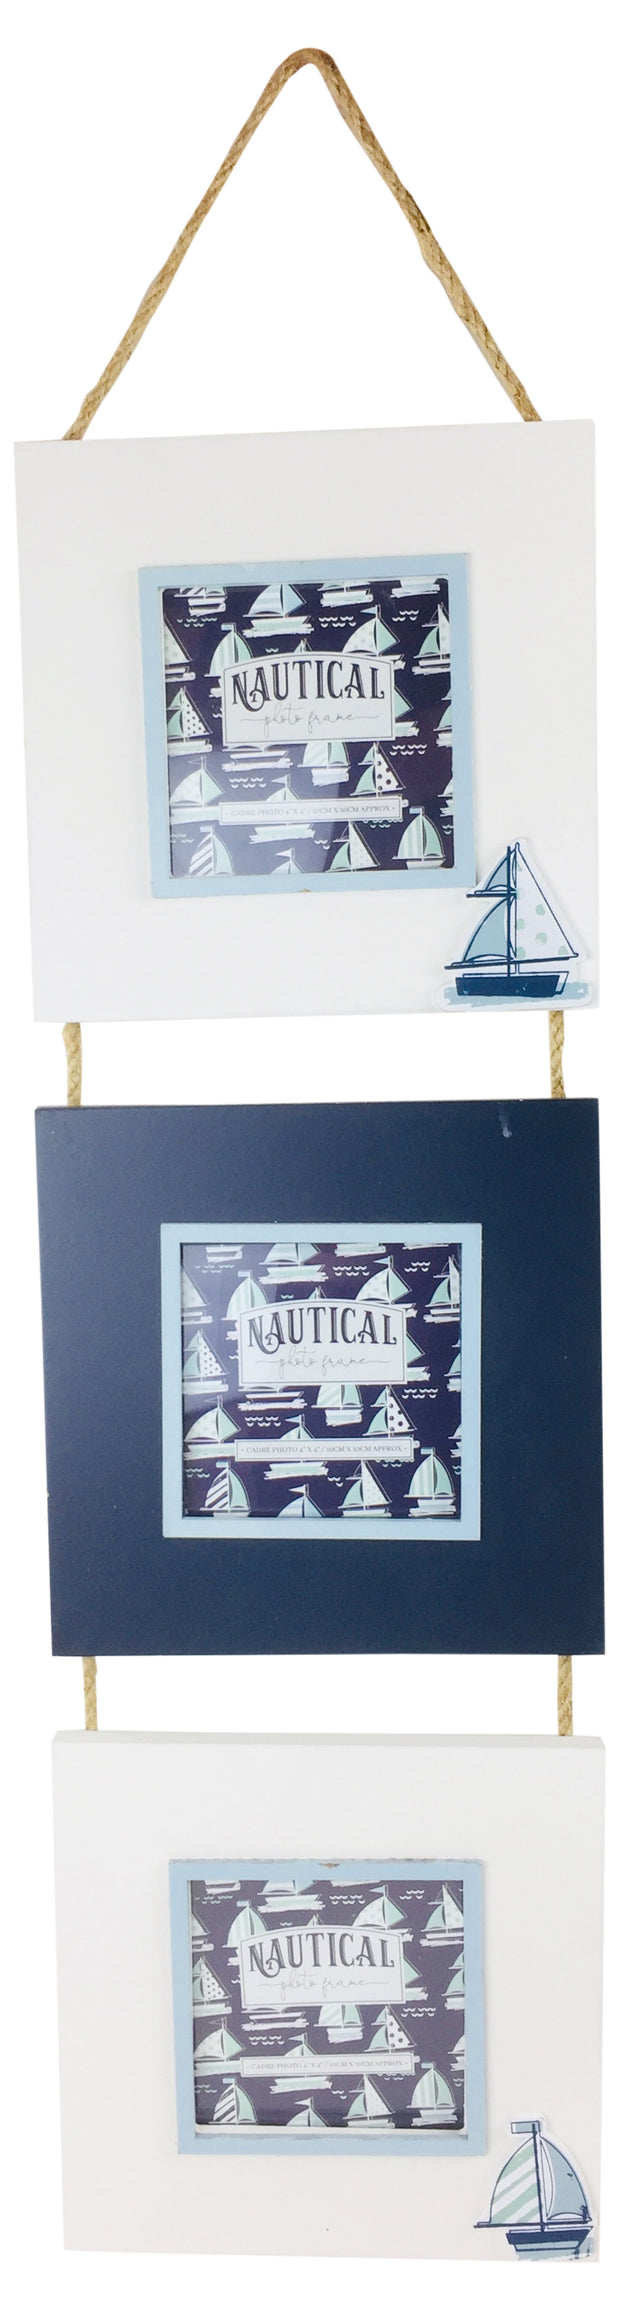 Triple Hang Photo Frame Boat 44cm